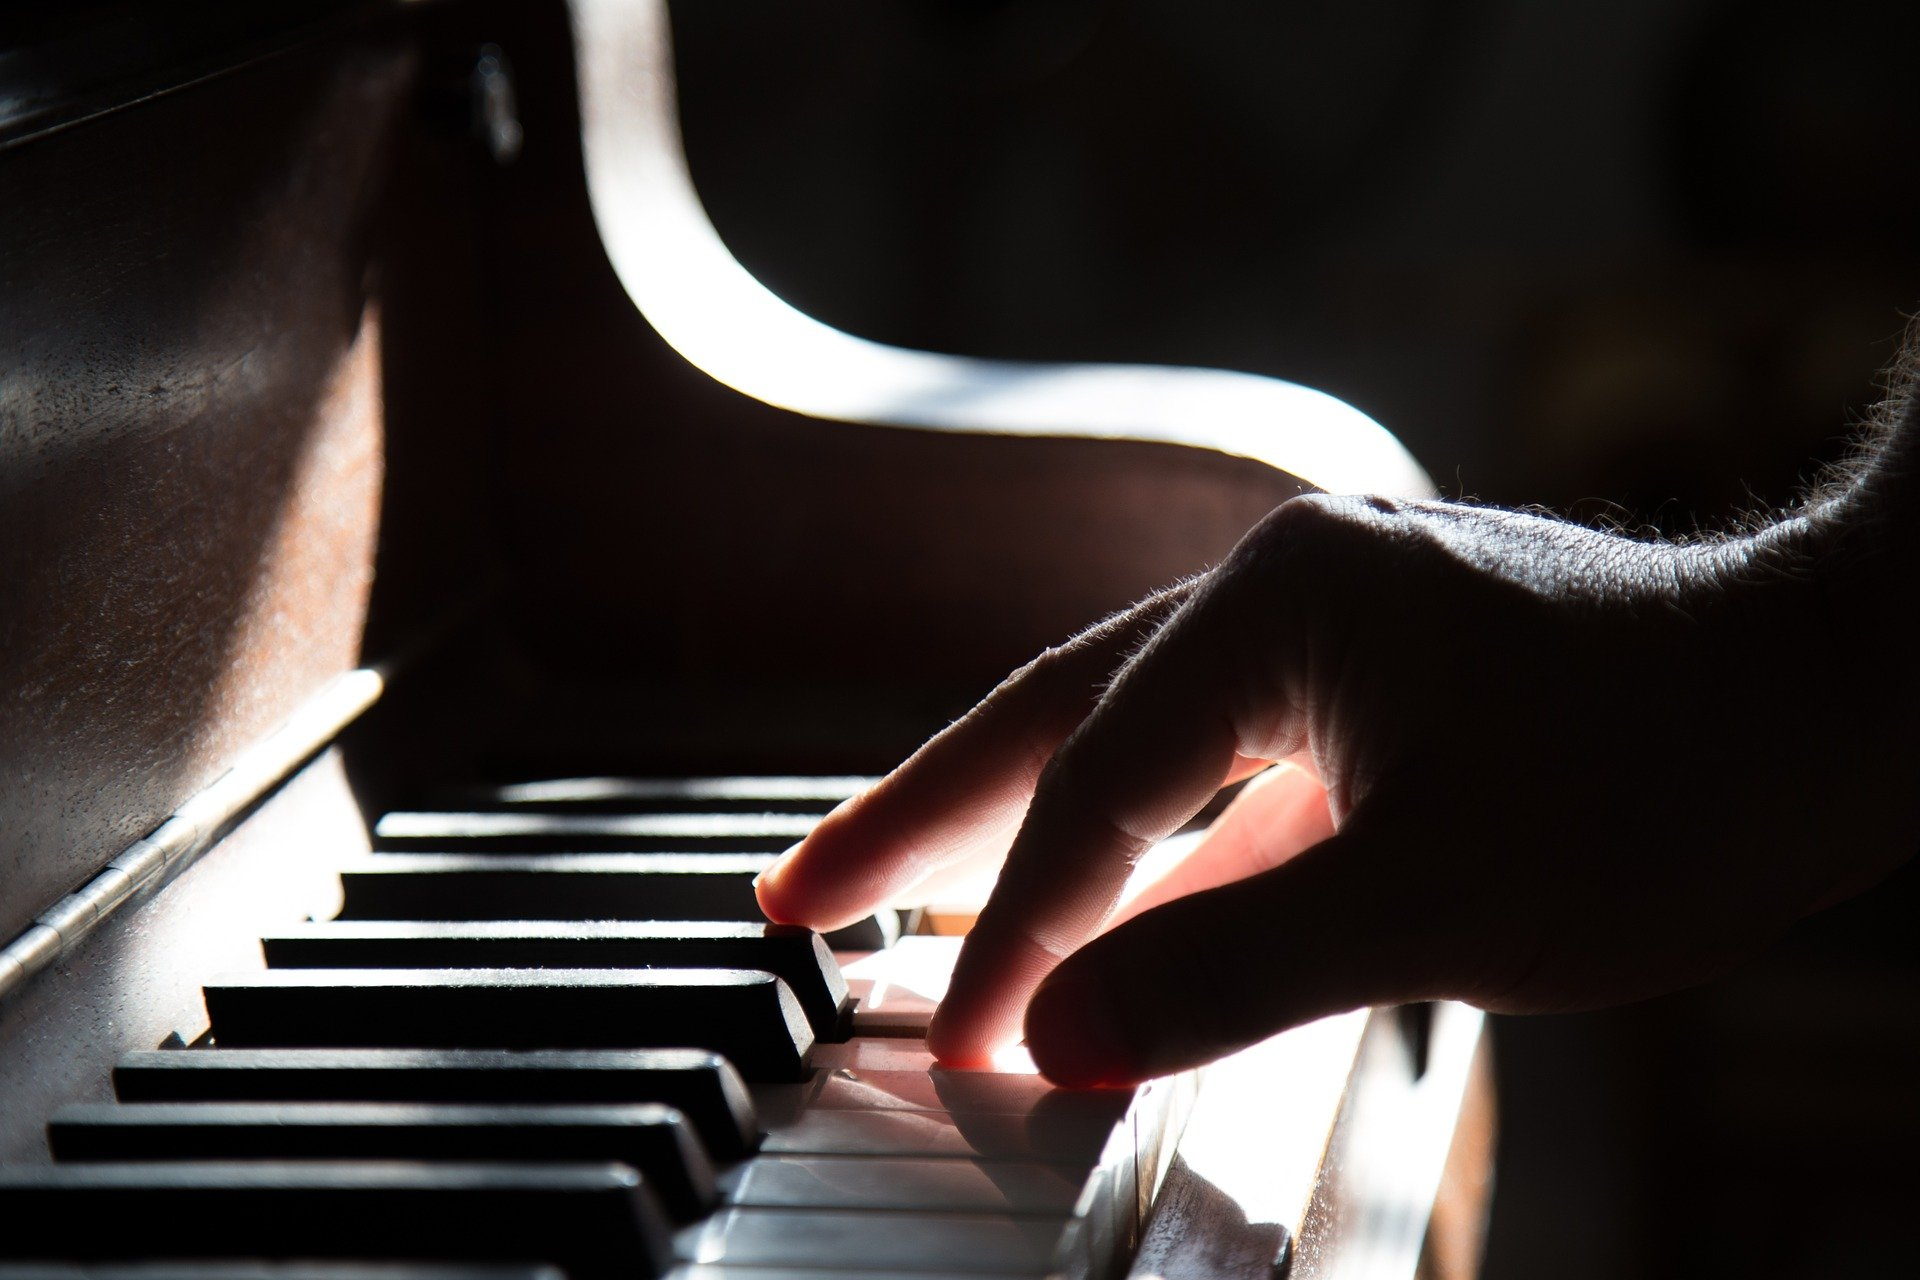 Why did the pianist stop playing the piano? | Photo: Pixabay/Free-Photos